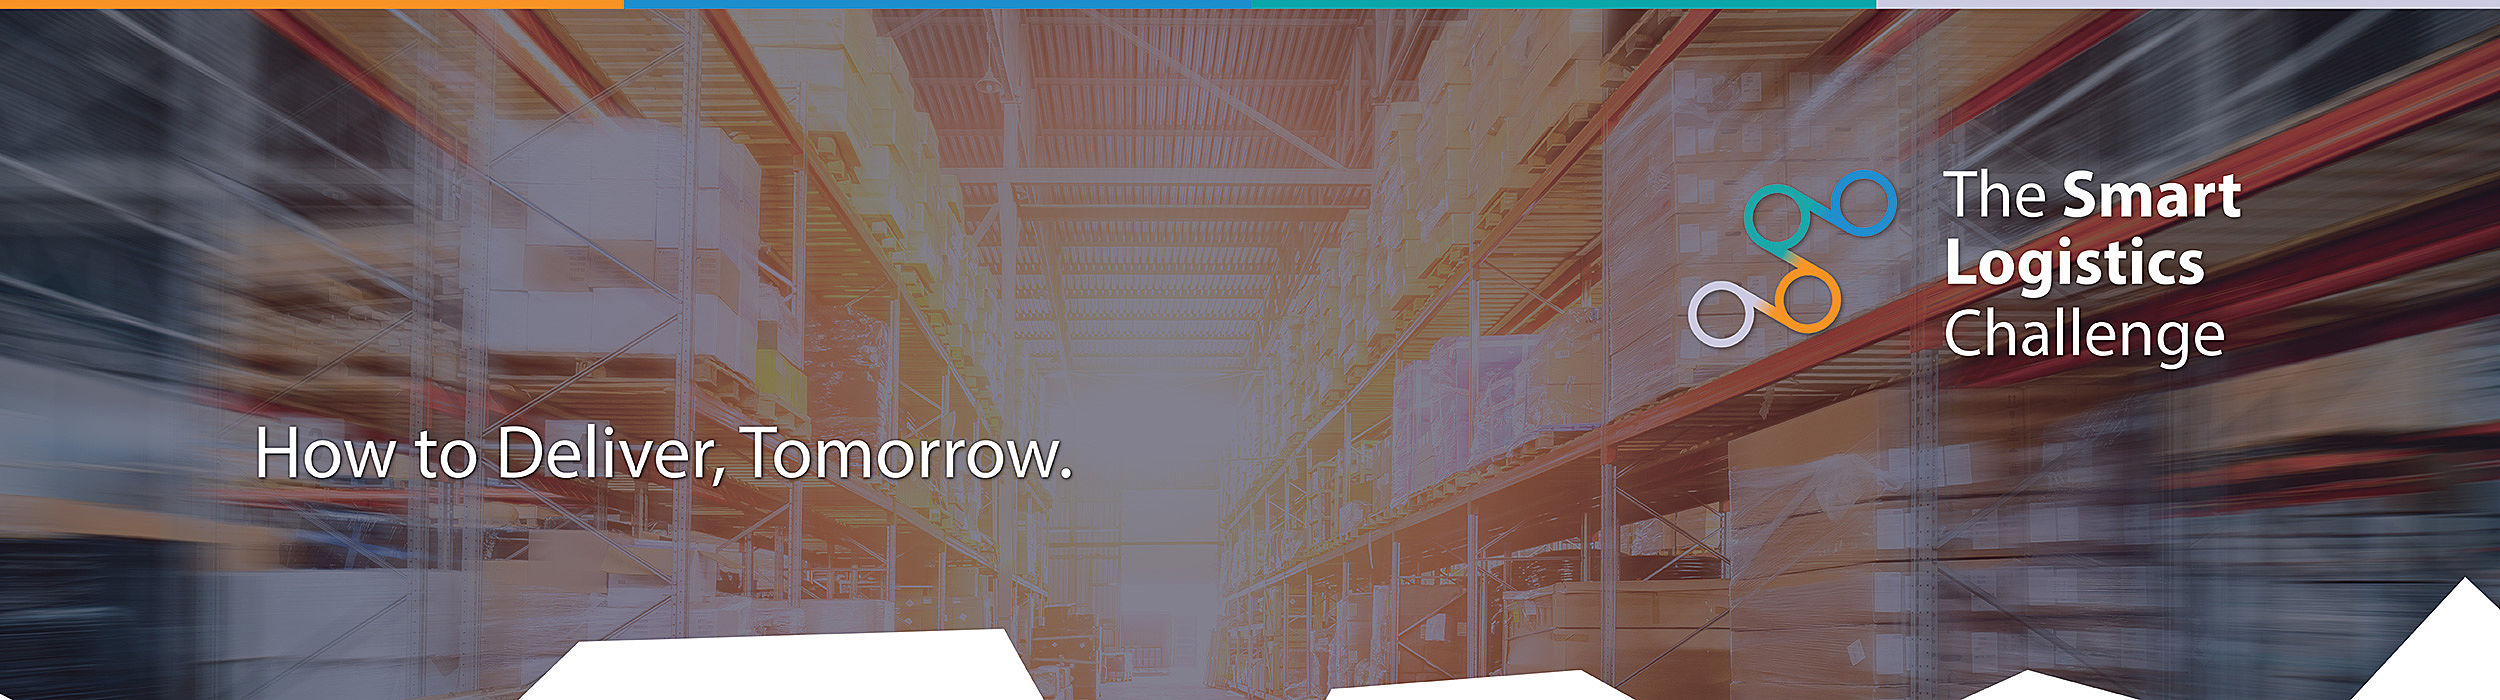 The Smart Logistics Challenge - deliver tomorrow